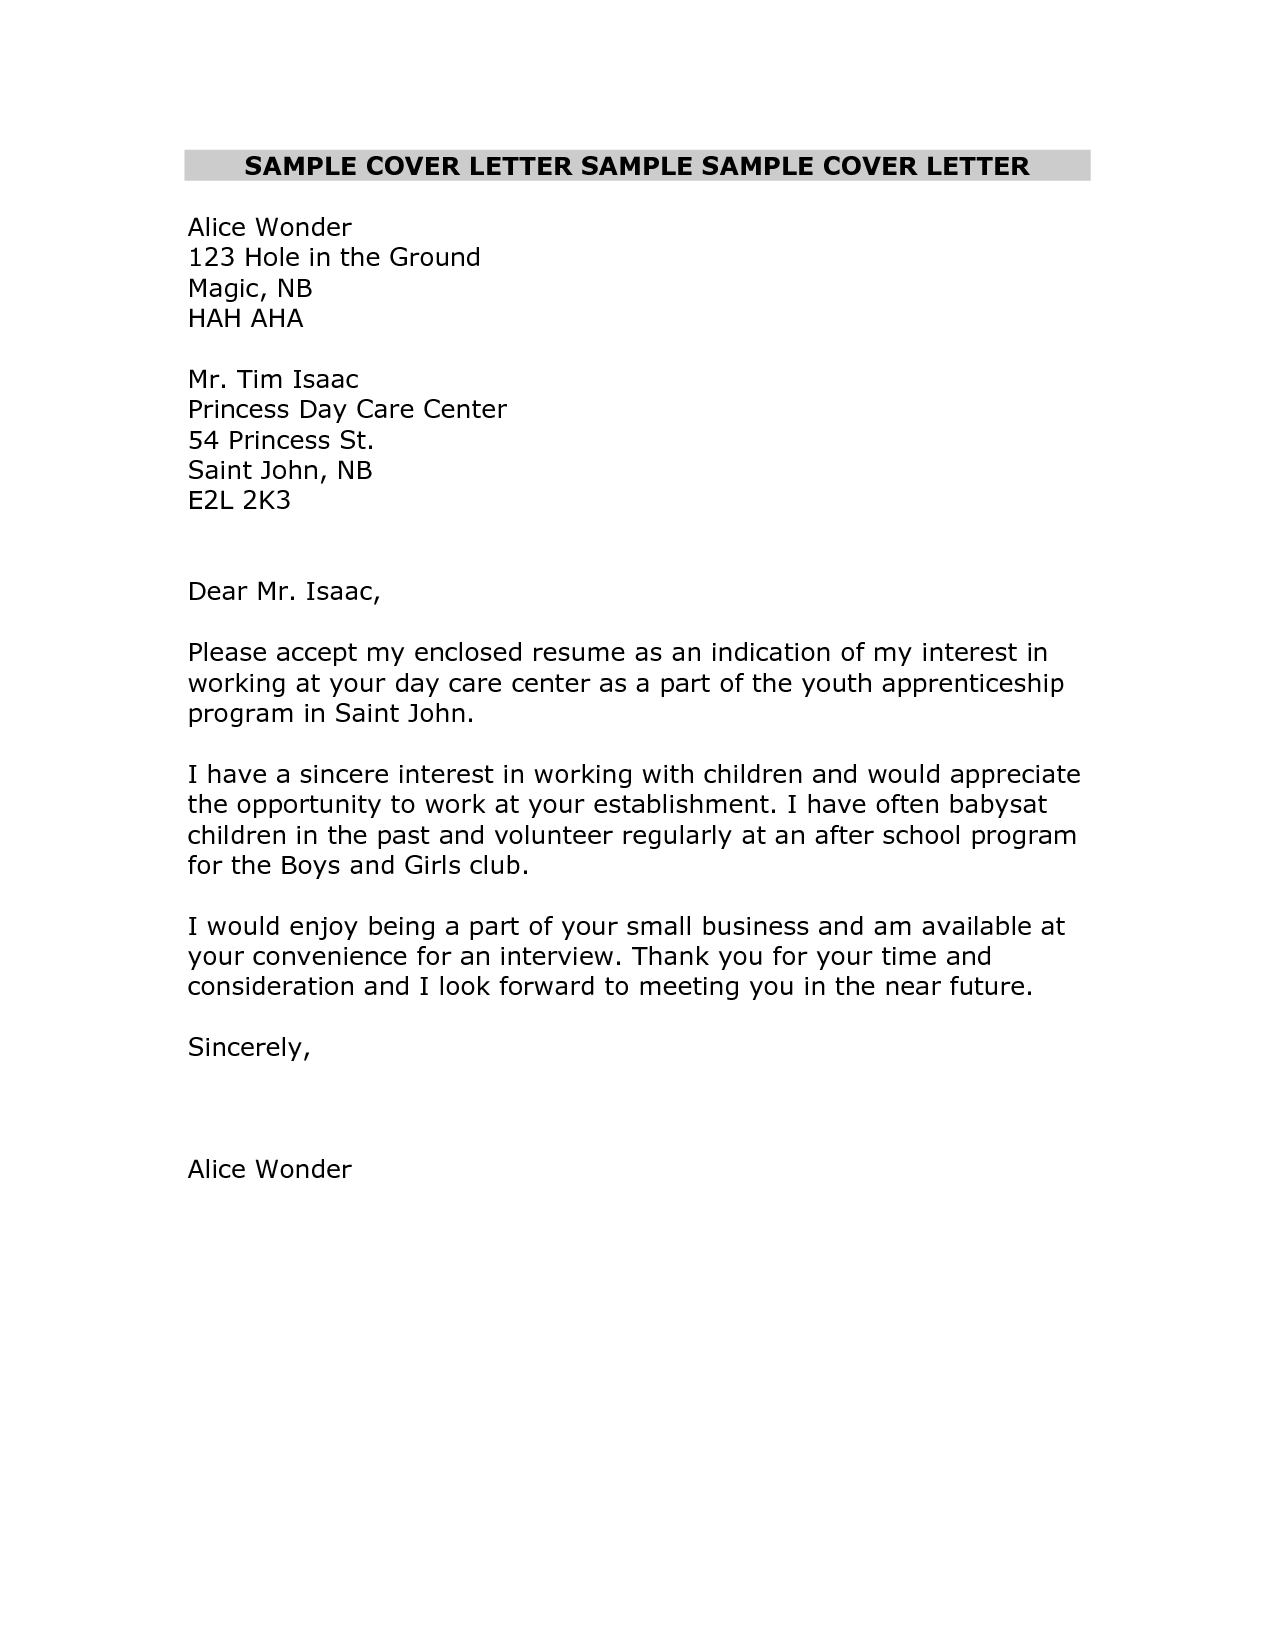 introduction to business letter choice image examples writing letter introduction to business letter gallery examples writing - Examples Of Writing A Cover Letter